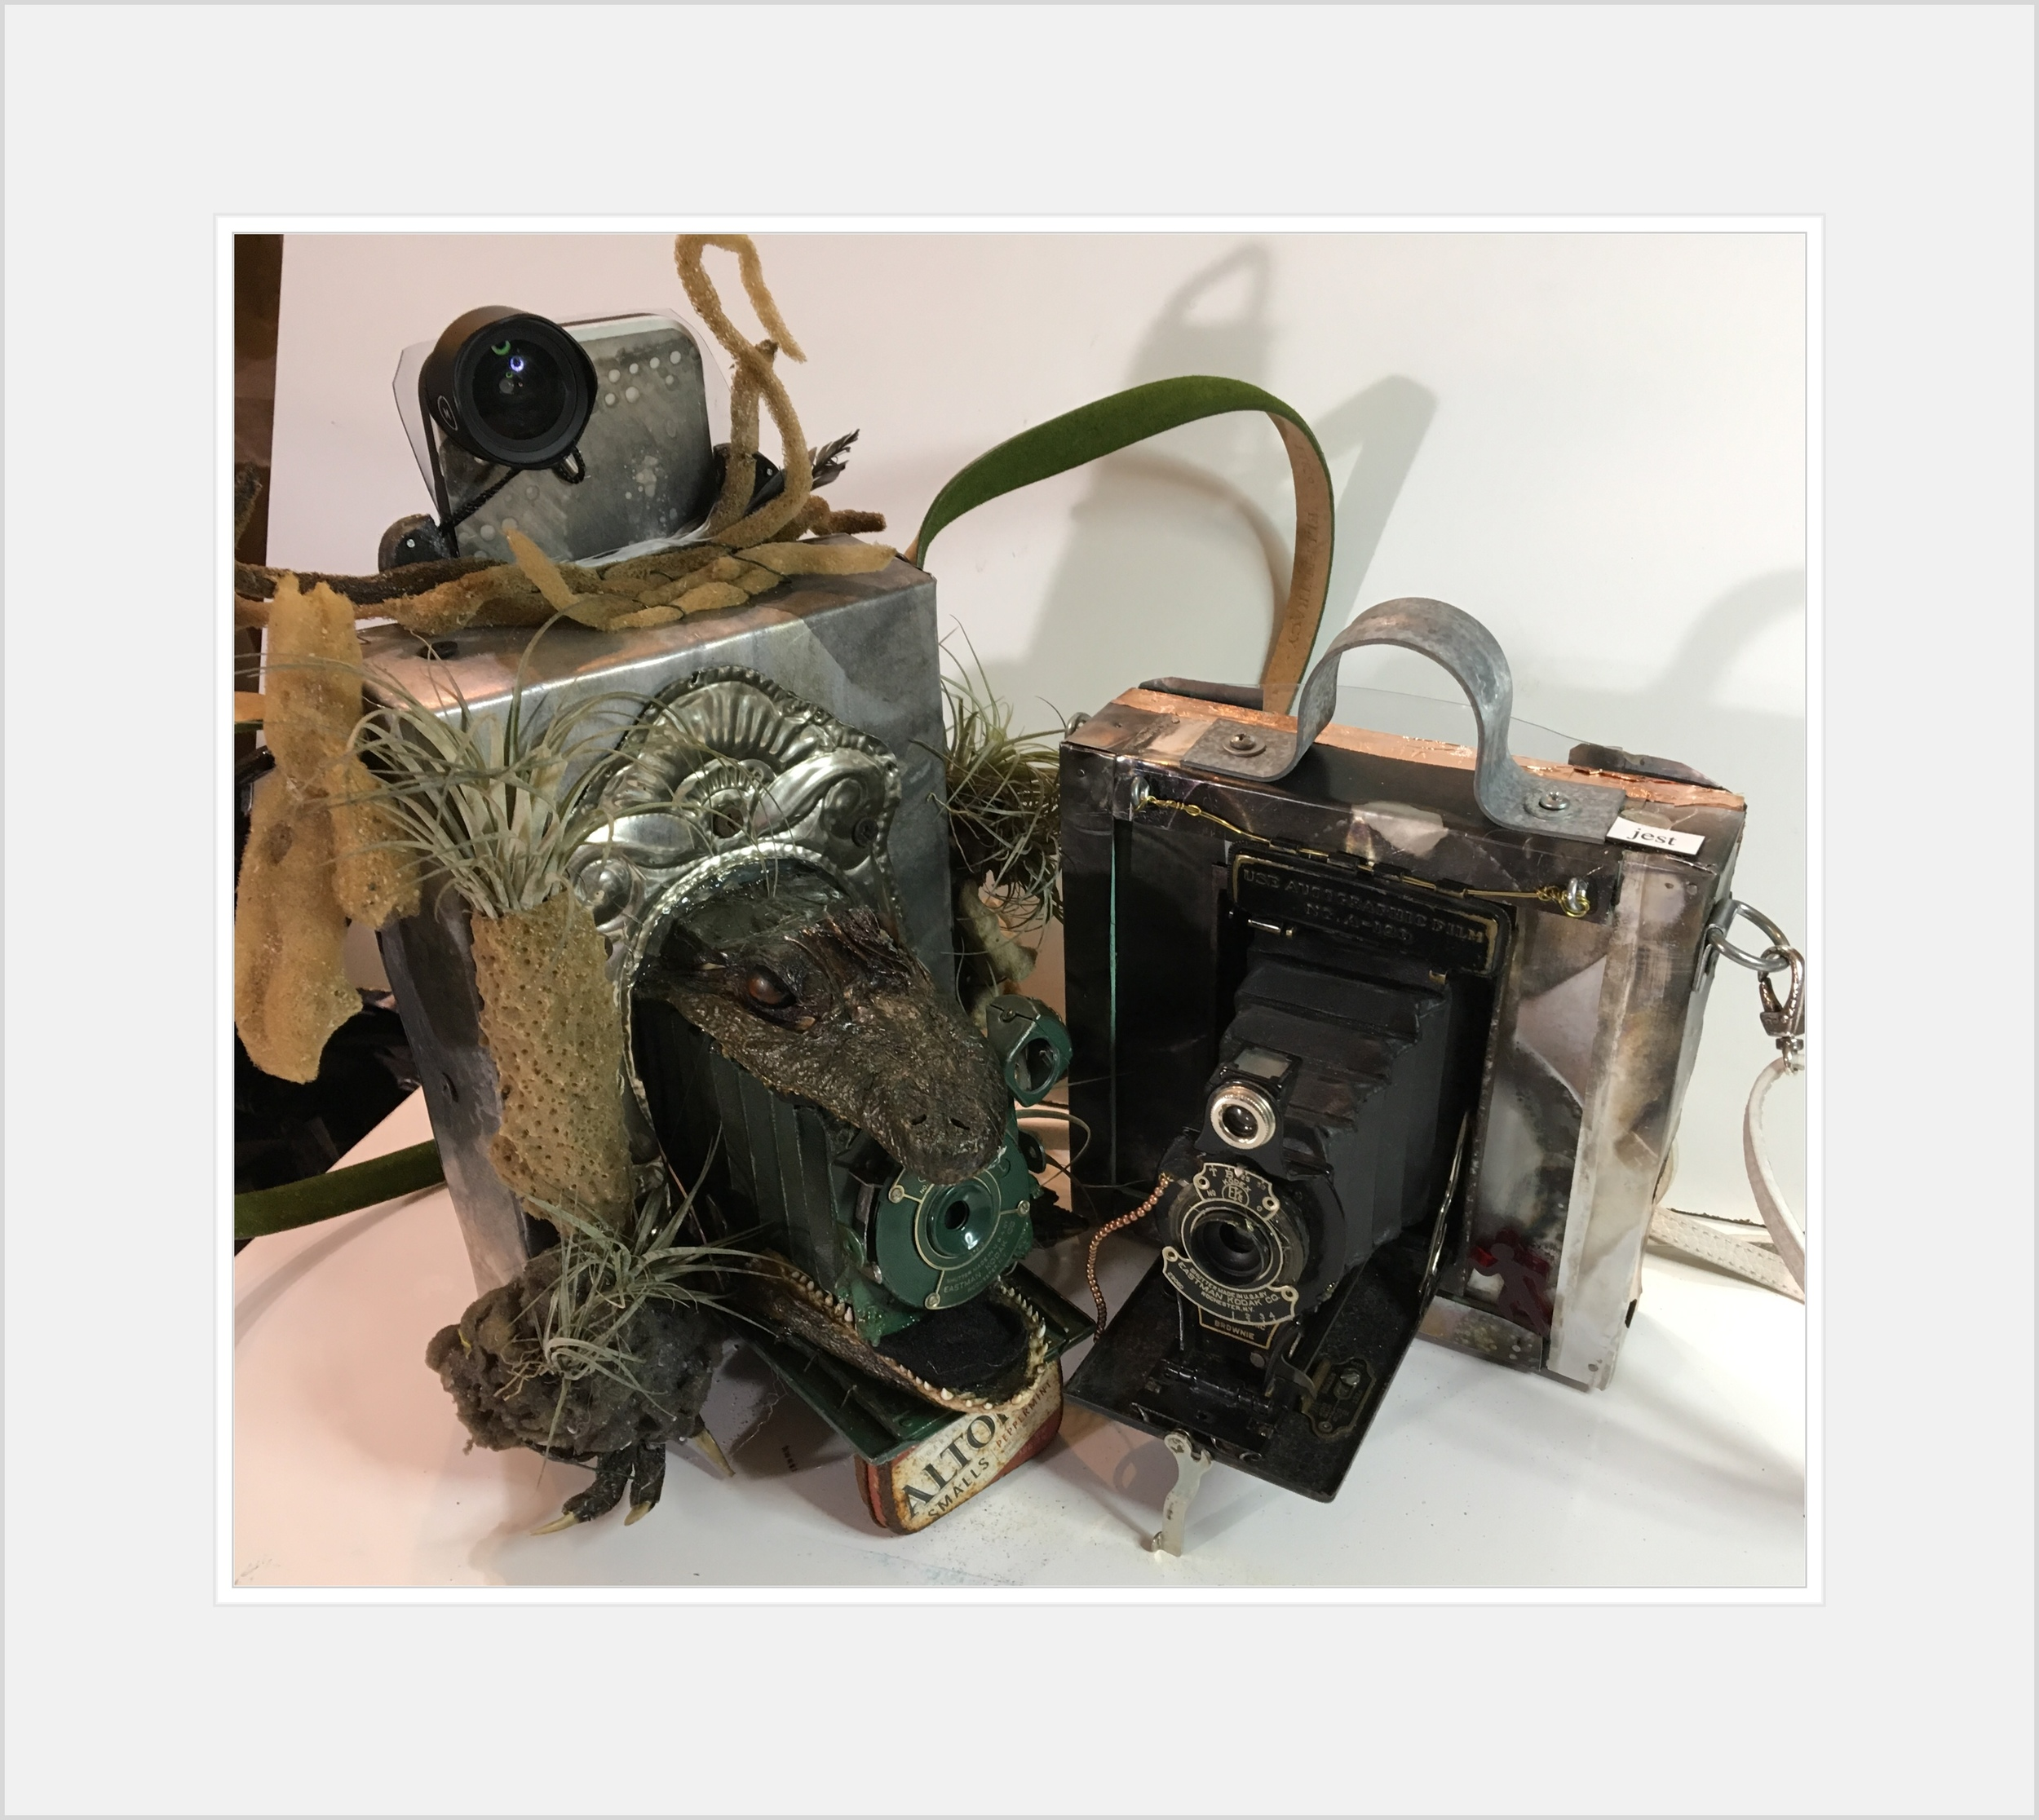 SWAMPCAM #6 and BONNYCAM #5. Only non functional camera parts are used.. Original patina aluminum plates cover a wooden box. There is a space built in to hide the Iphones..